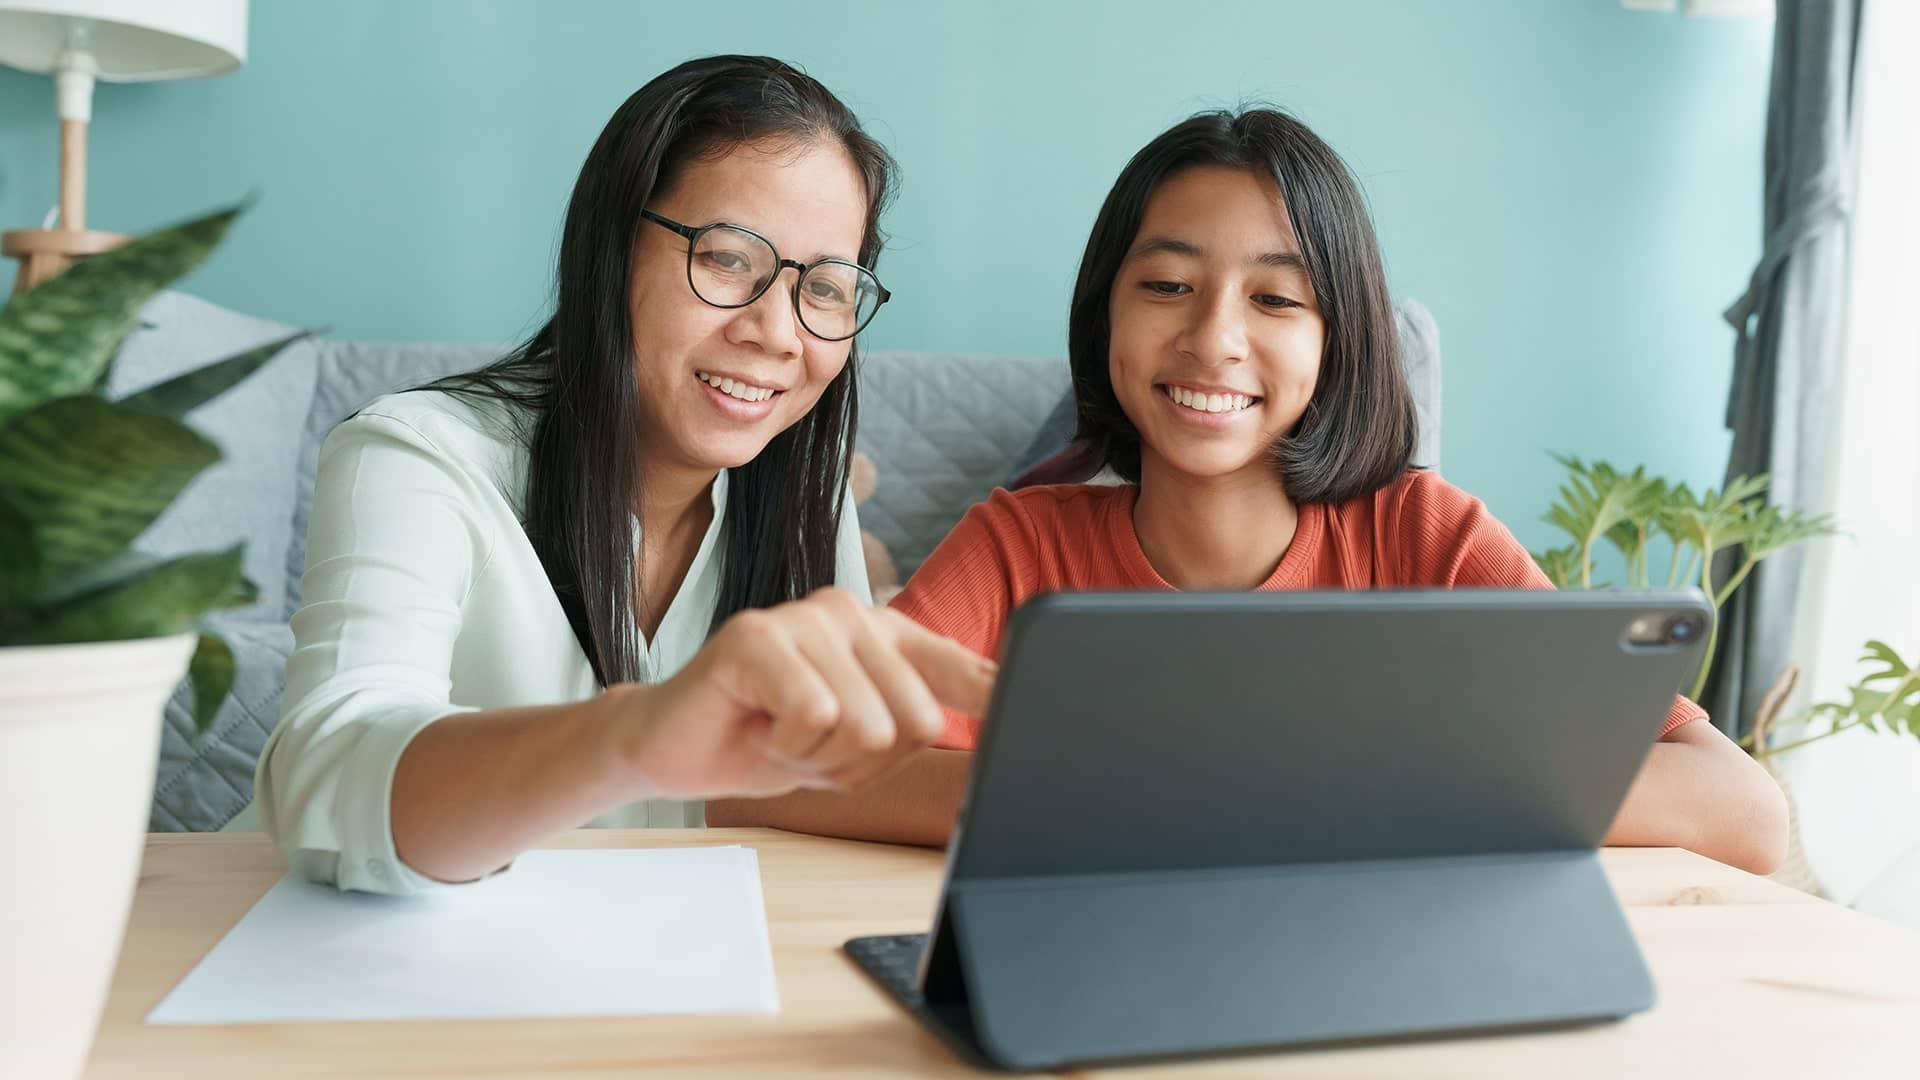 Parents are choosing Informatics Online School for their Kids. Here's why.